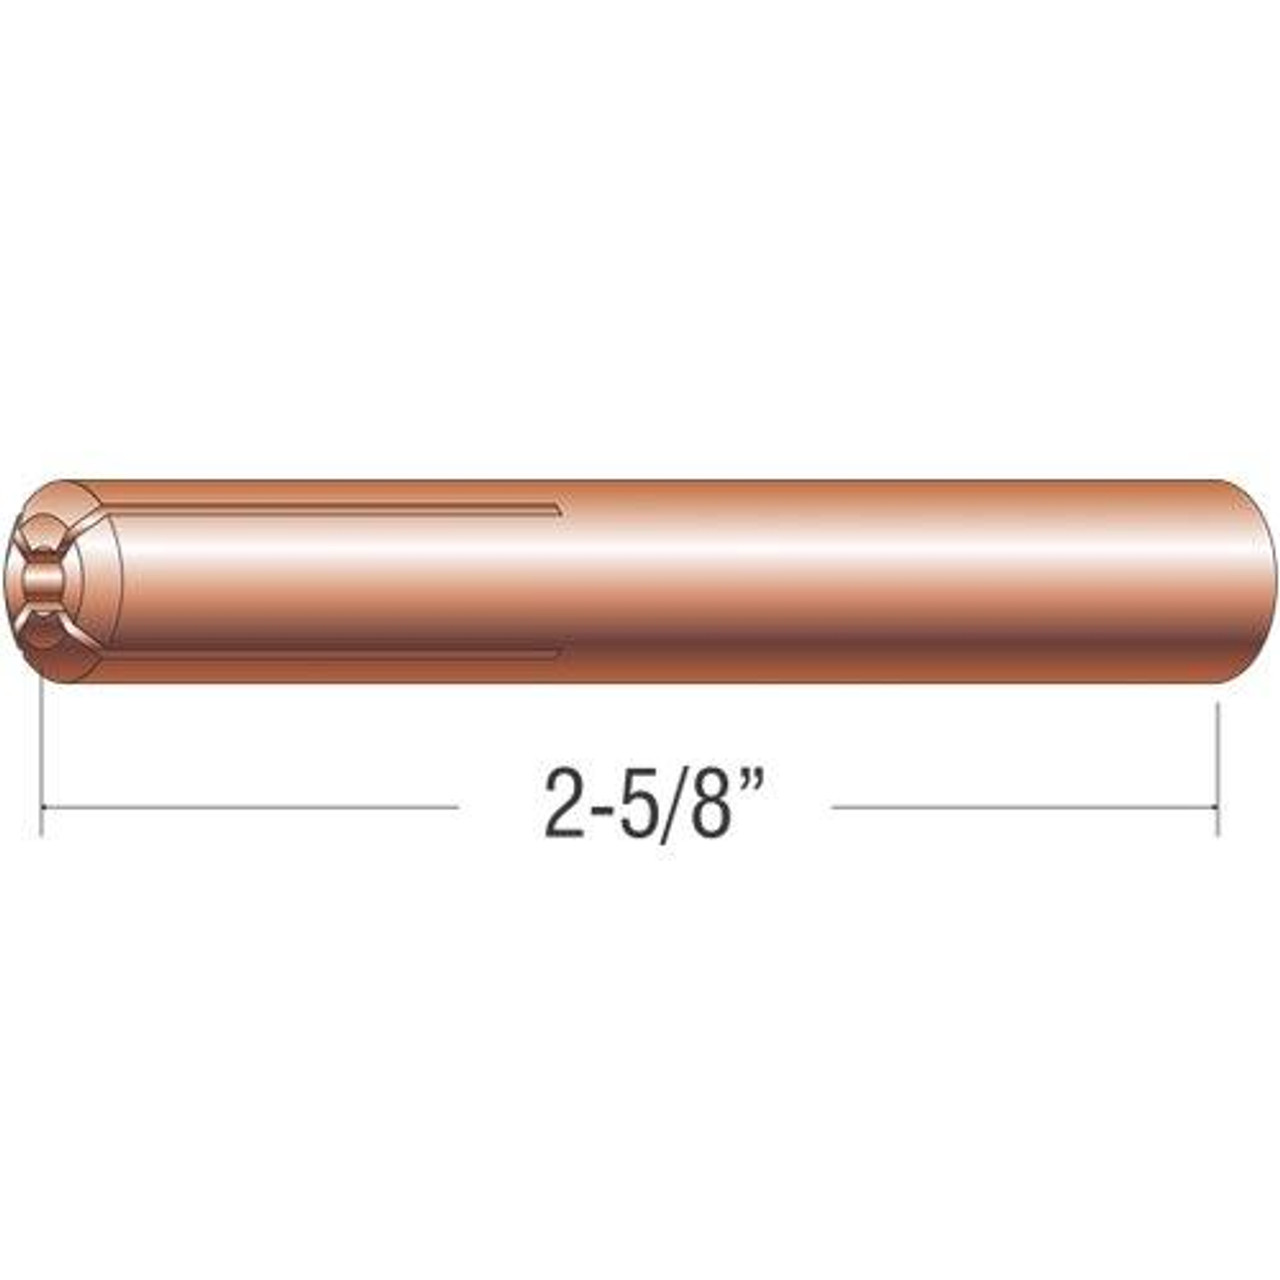 Profax 57N45 Collet .040 27 Series Torch Pack of 5